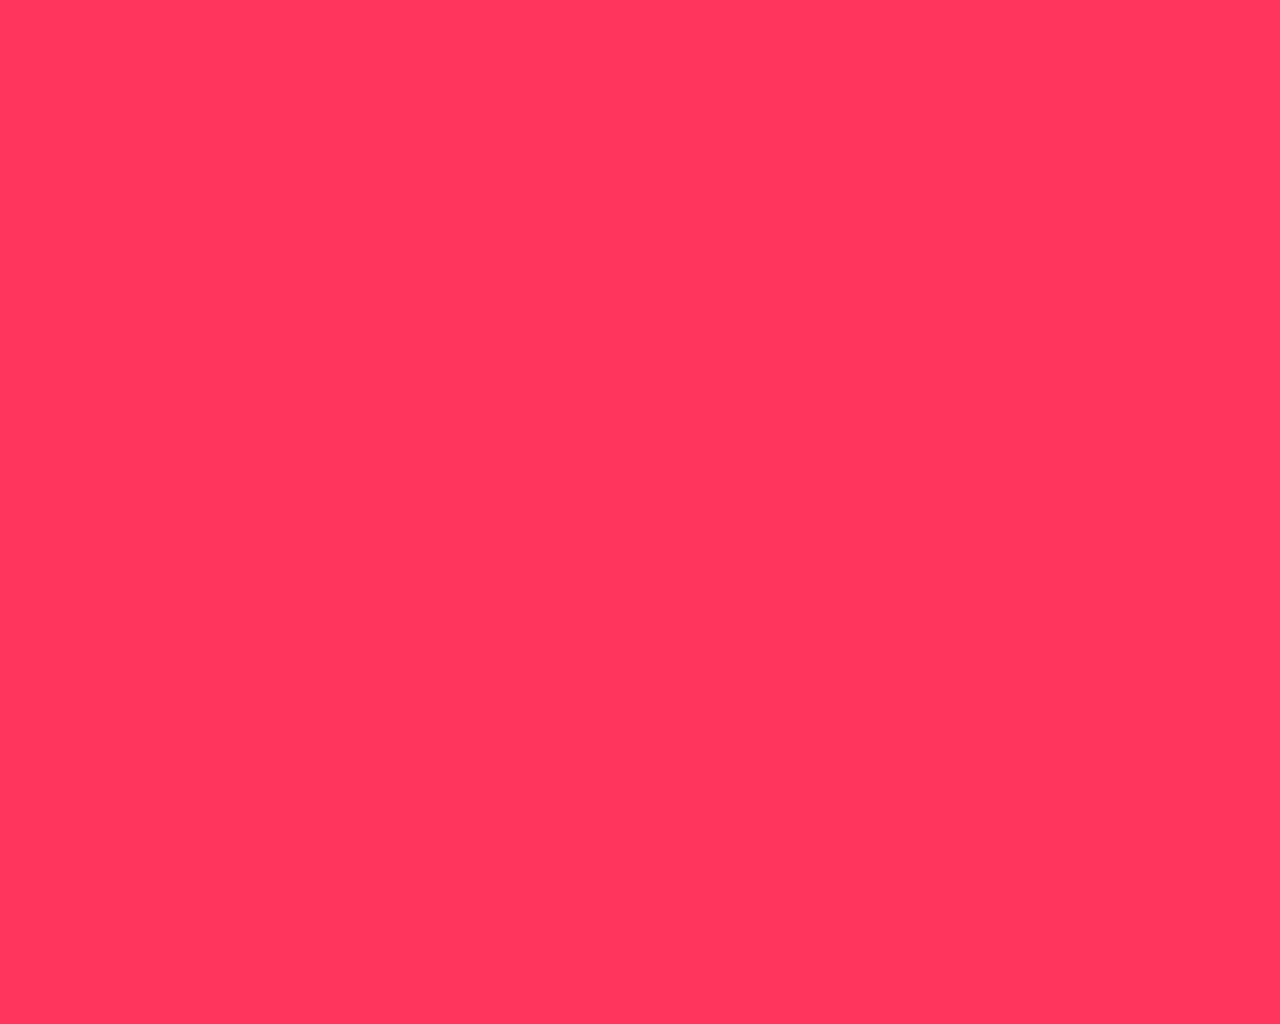 1280x1024 Radical Red Solid Color Background